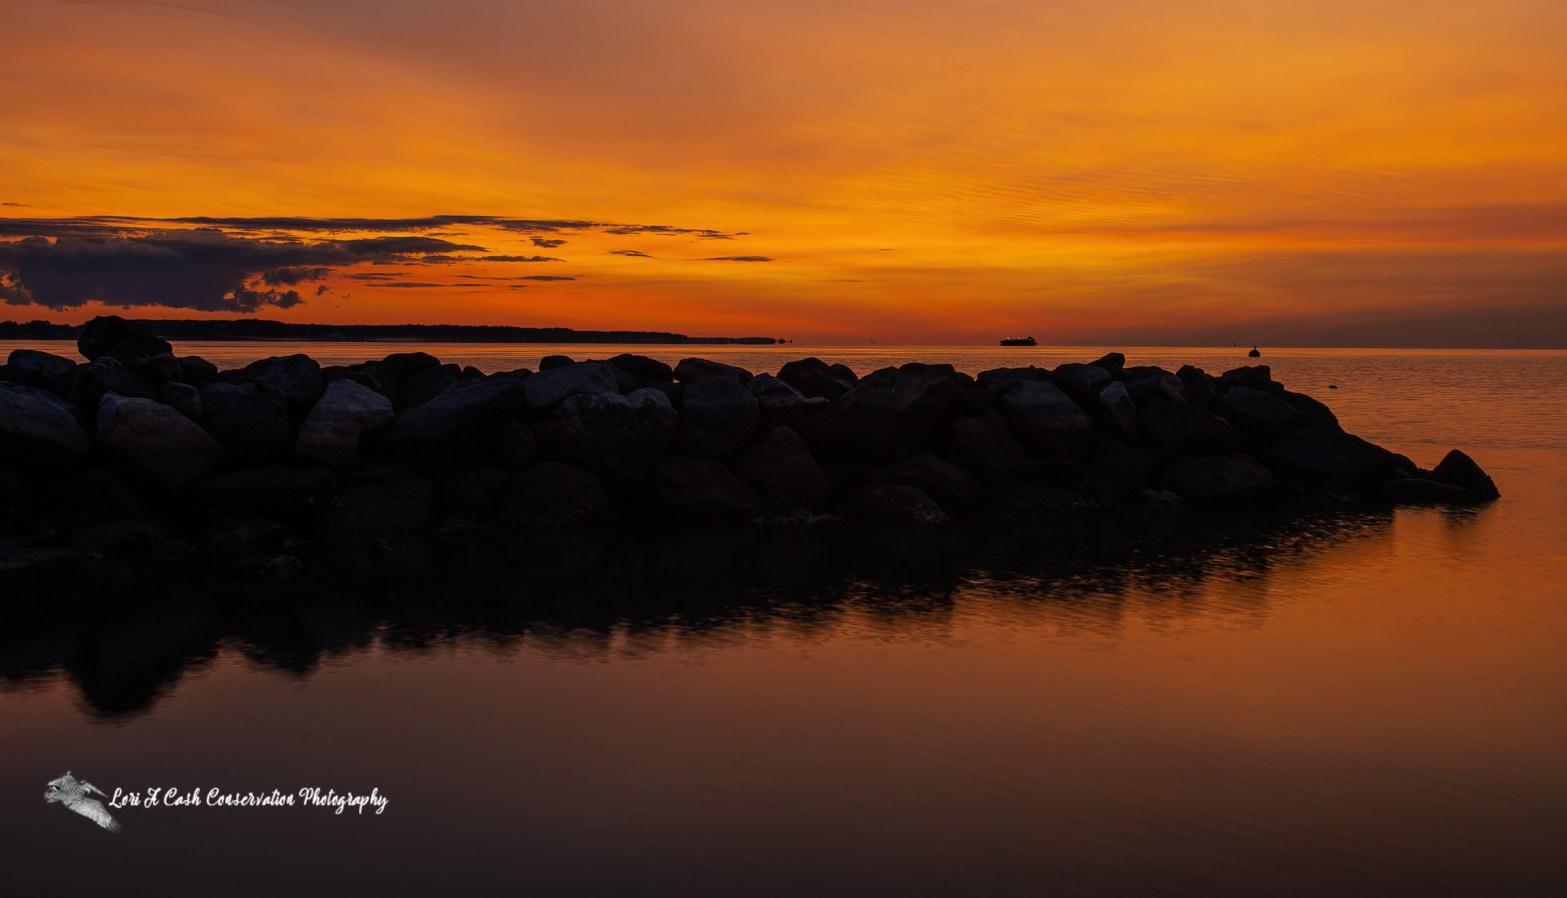 Summer sunrise over jetty rocks on the York River from the view of the beach in Yorktown, Virginia.